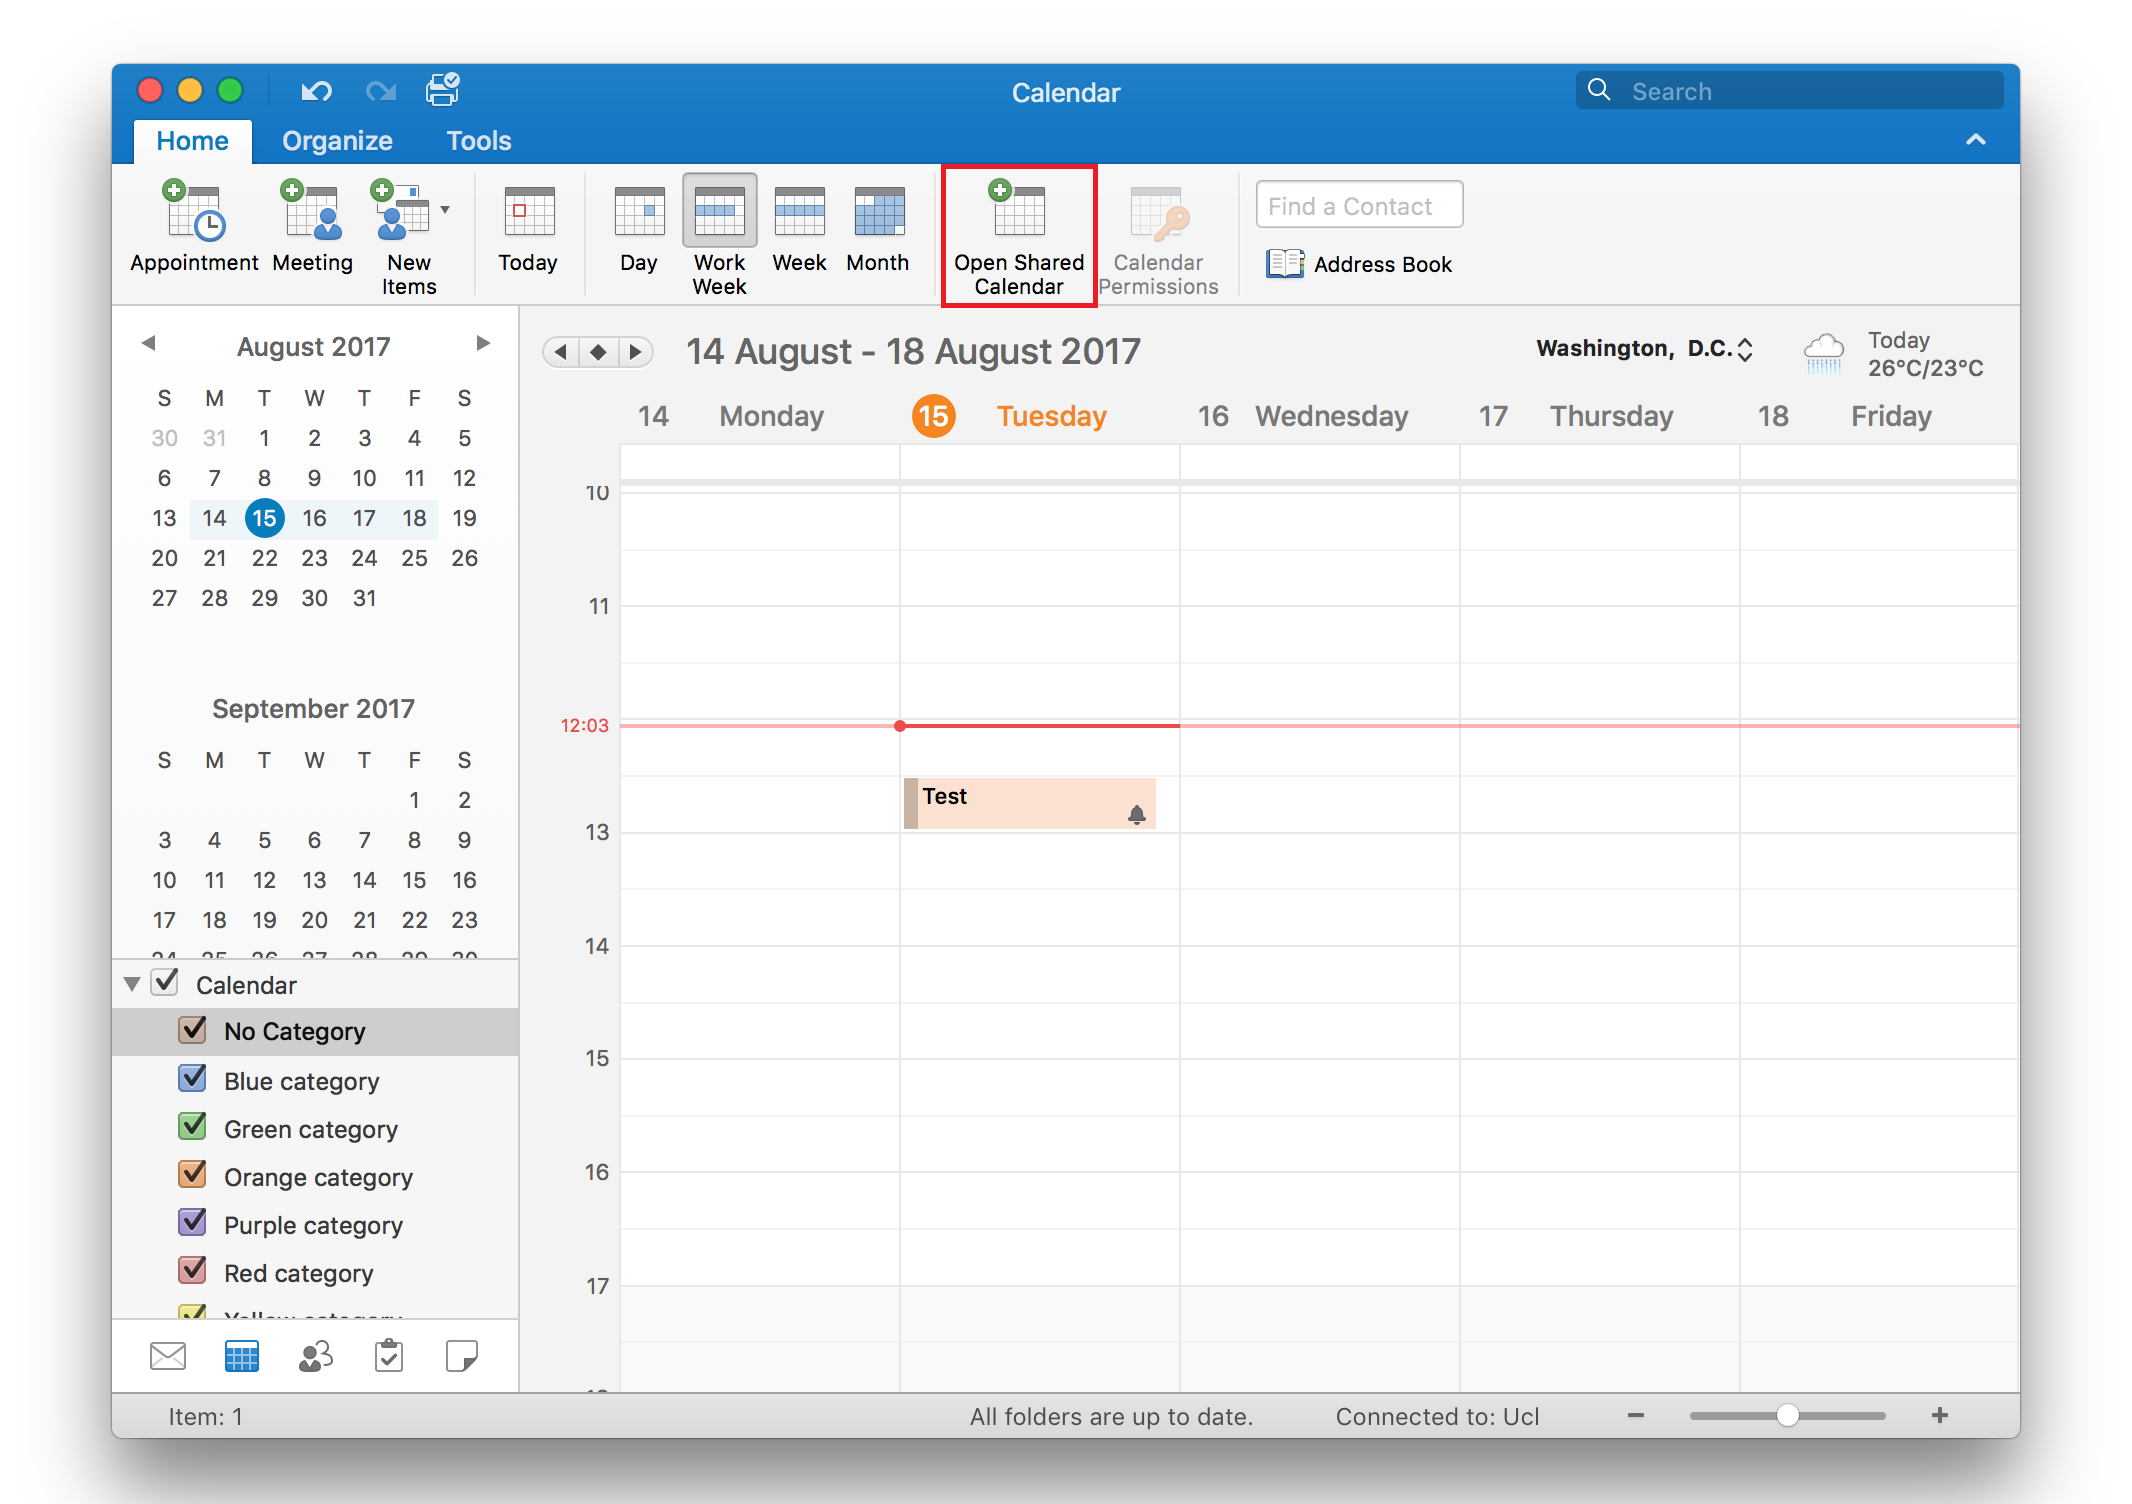 View another person's calendar in Outlook 2016 for Mac | Information